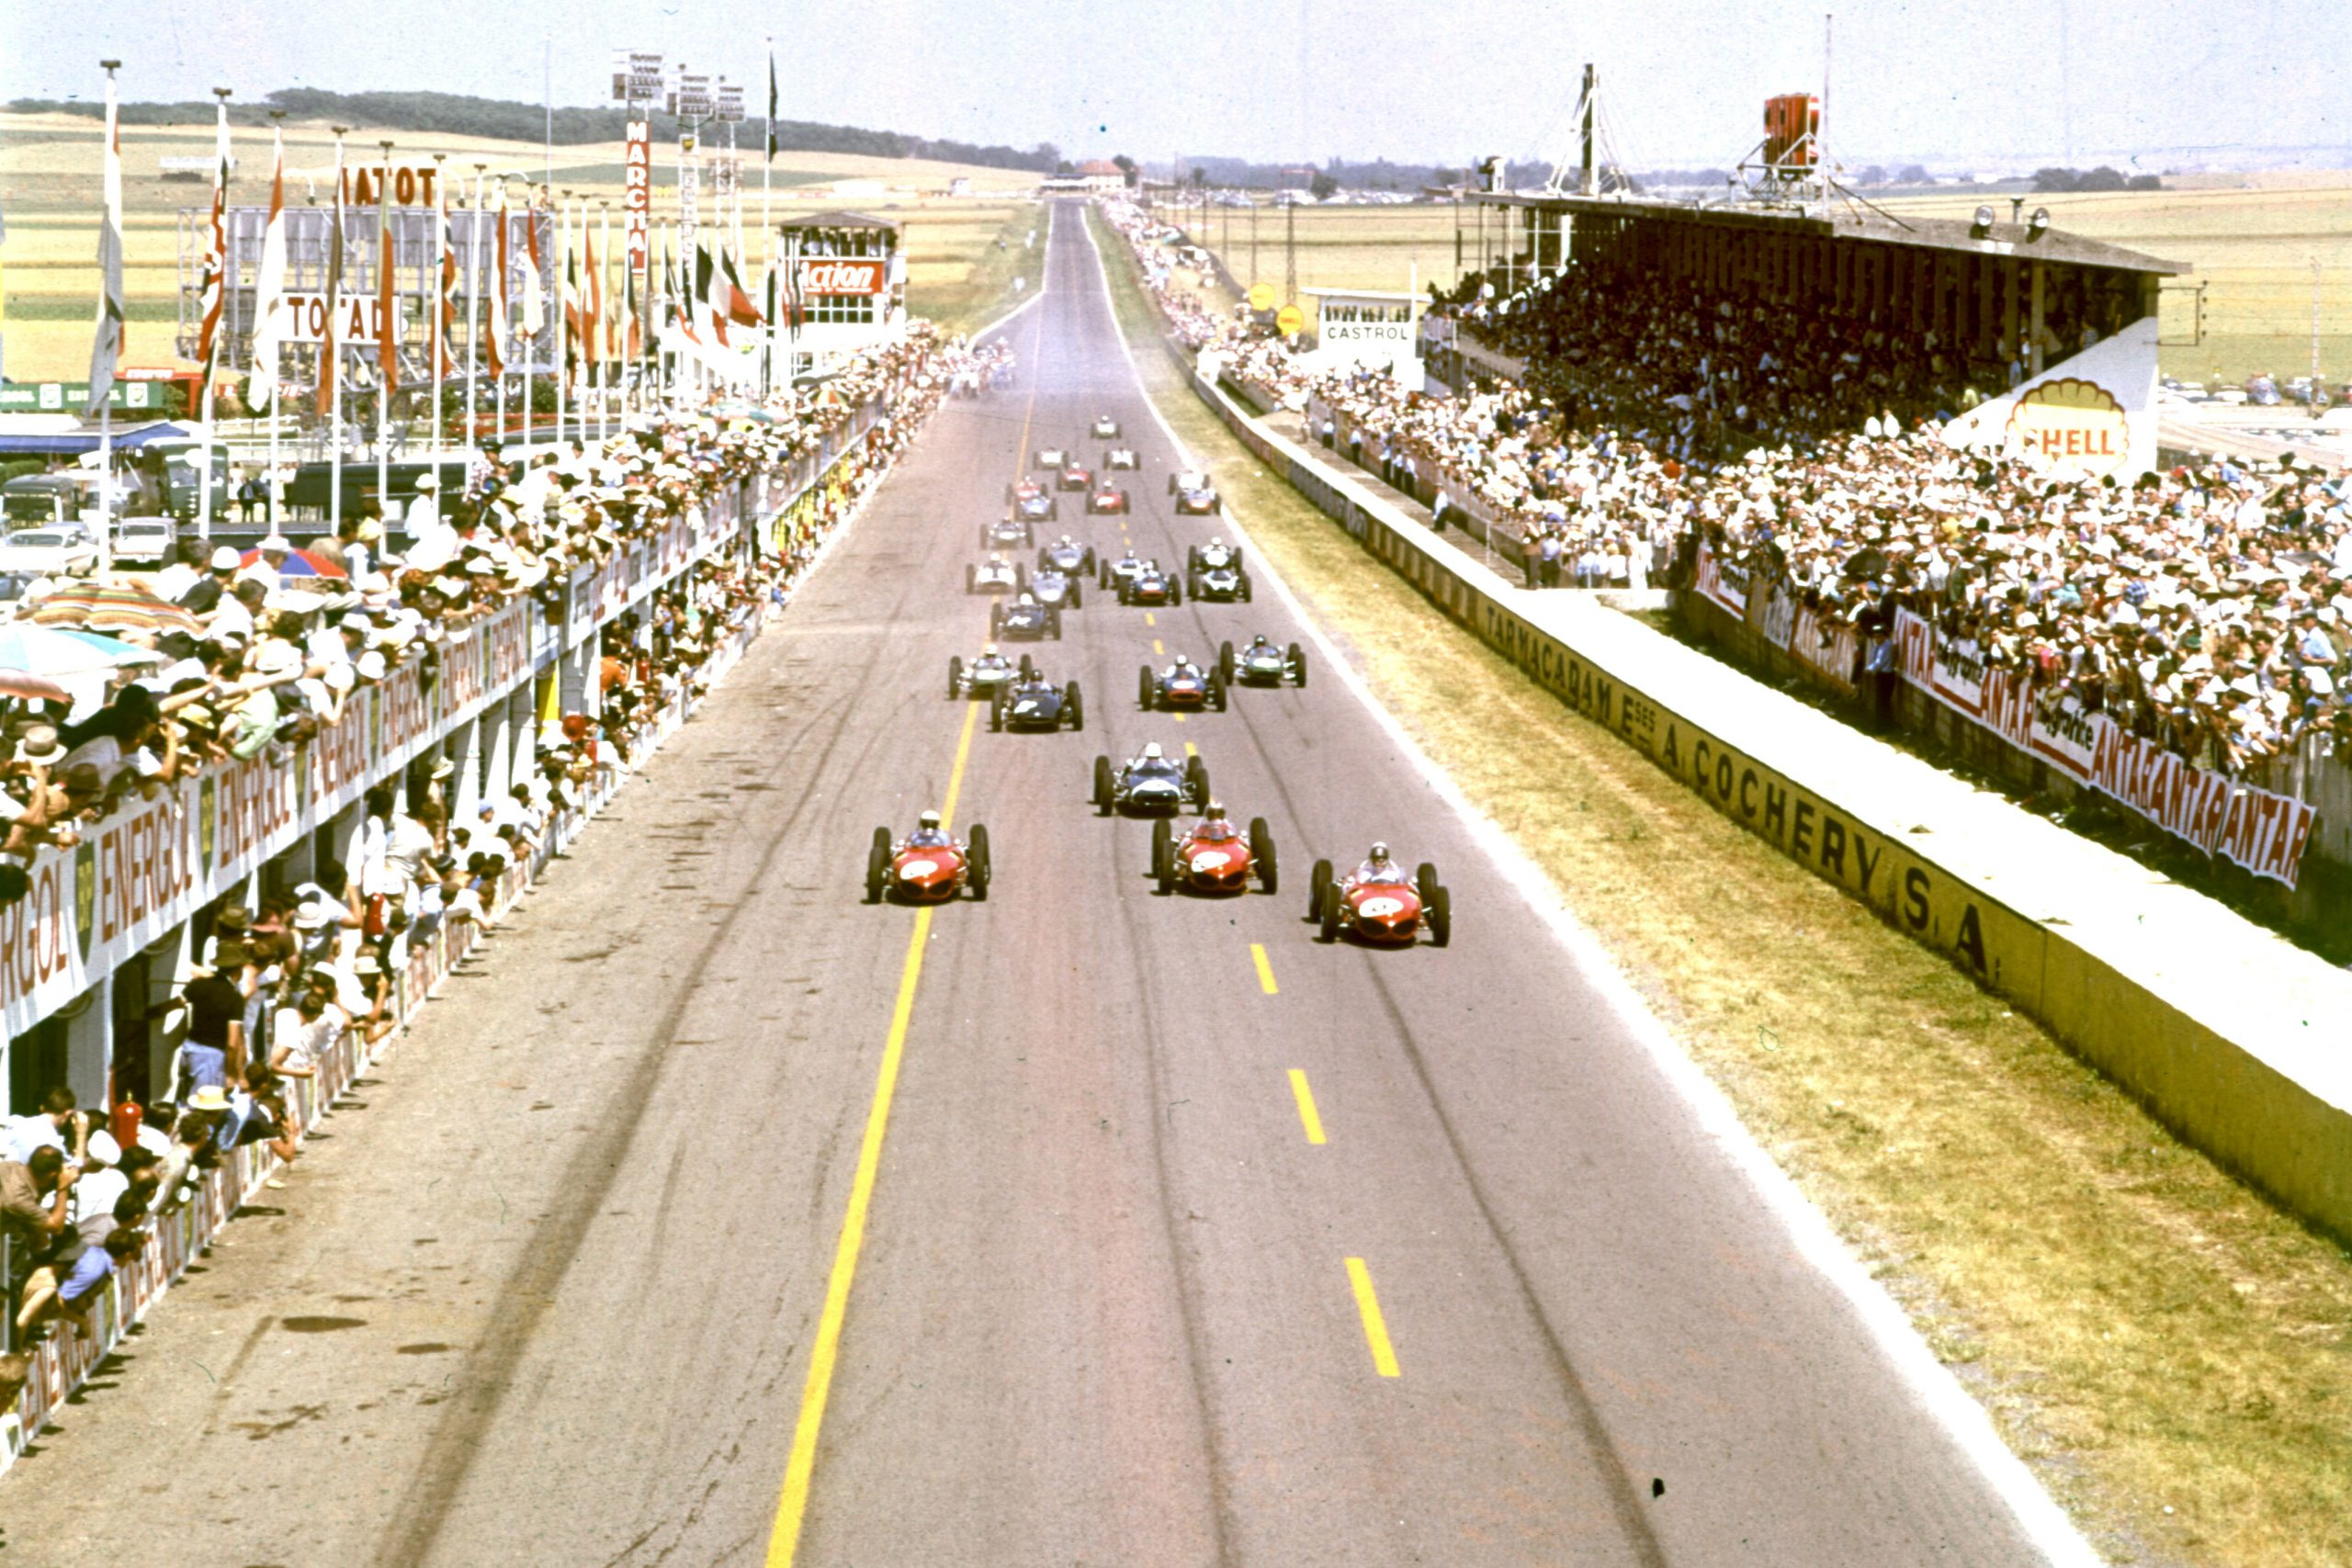 The start of the 1961 French Grand Prix at Reims.